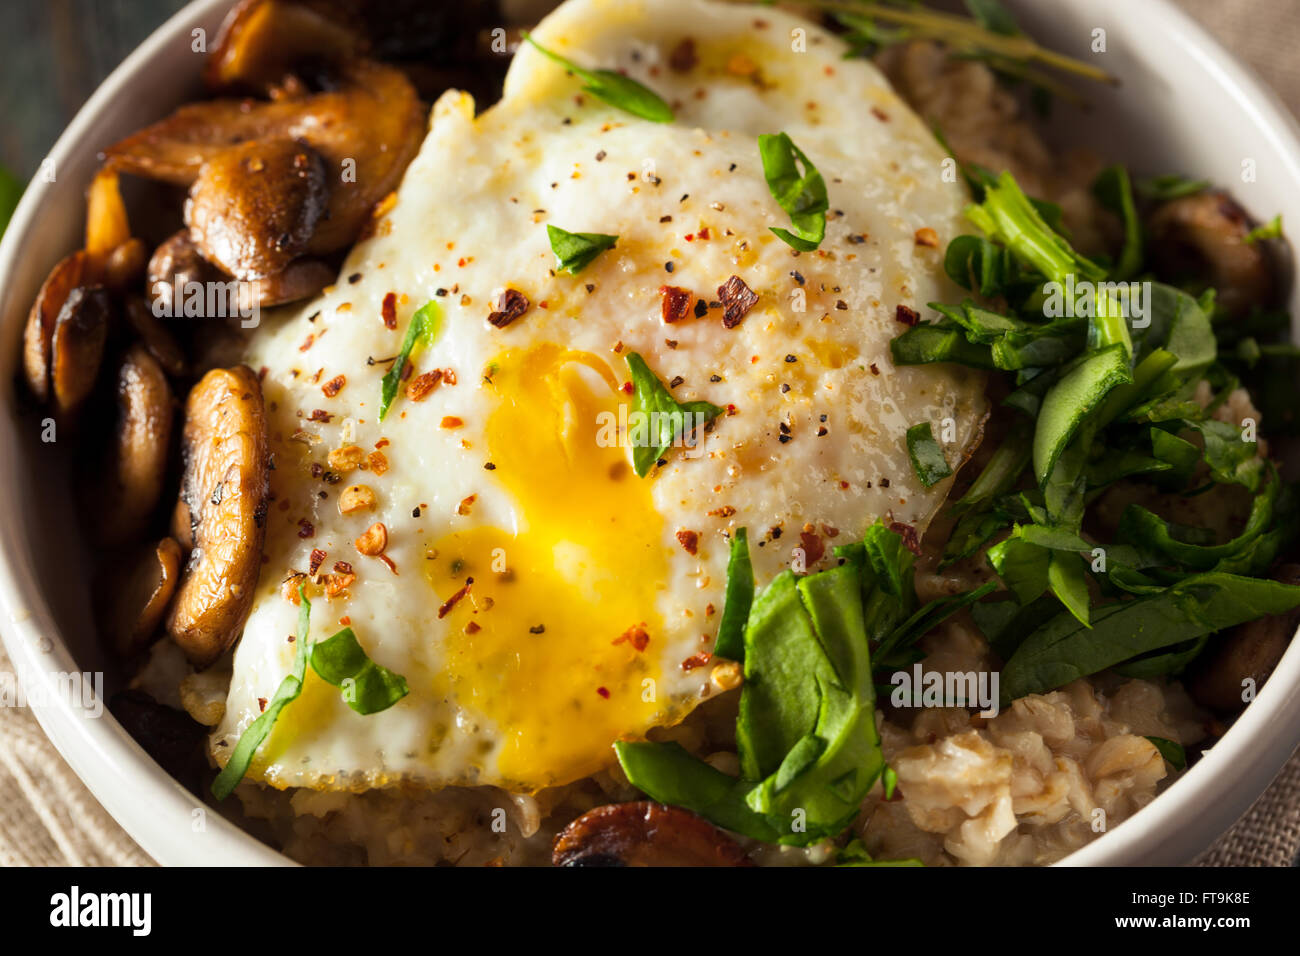 Healthy Homemade Savory Oatmeal with Eggs Mushrooms and Spinach - Stock Image